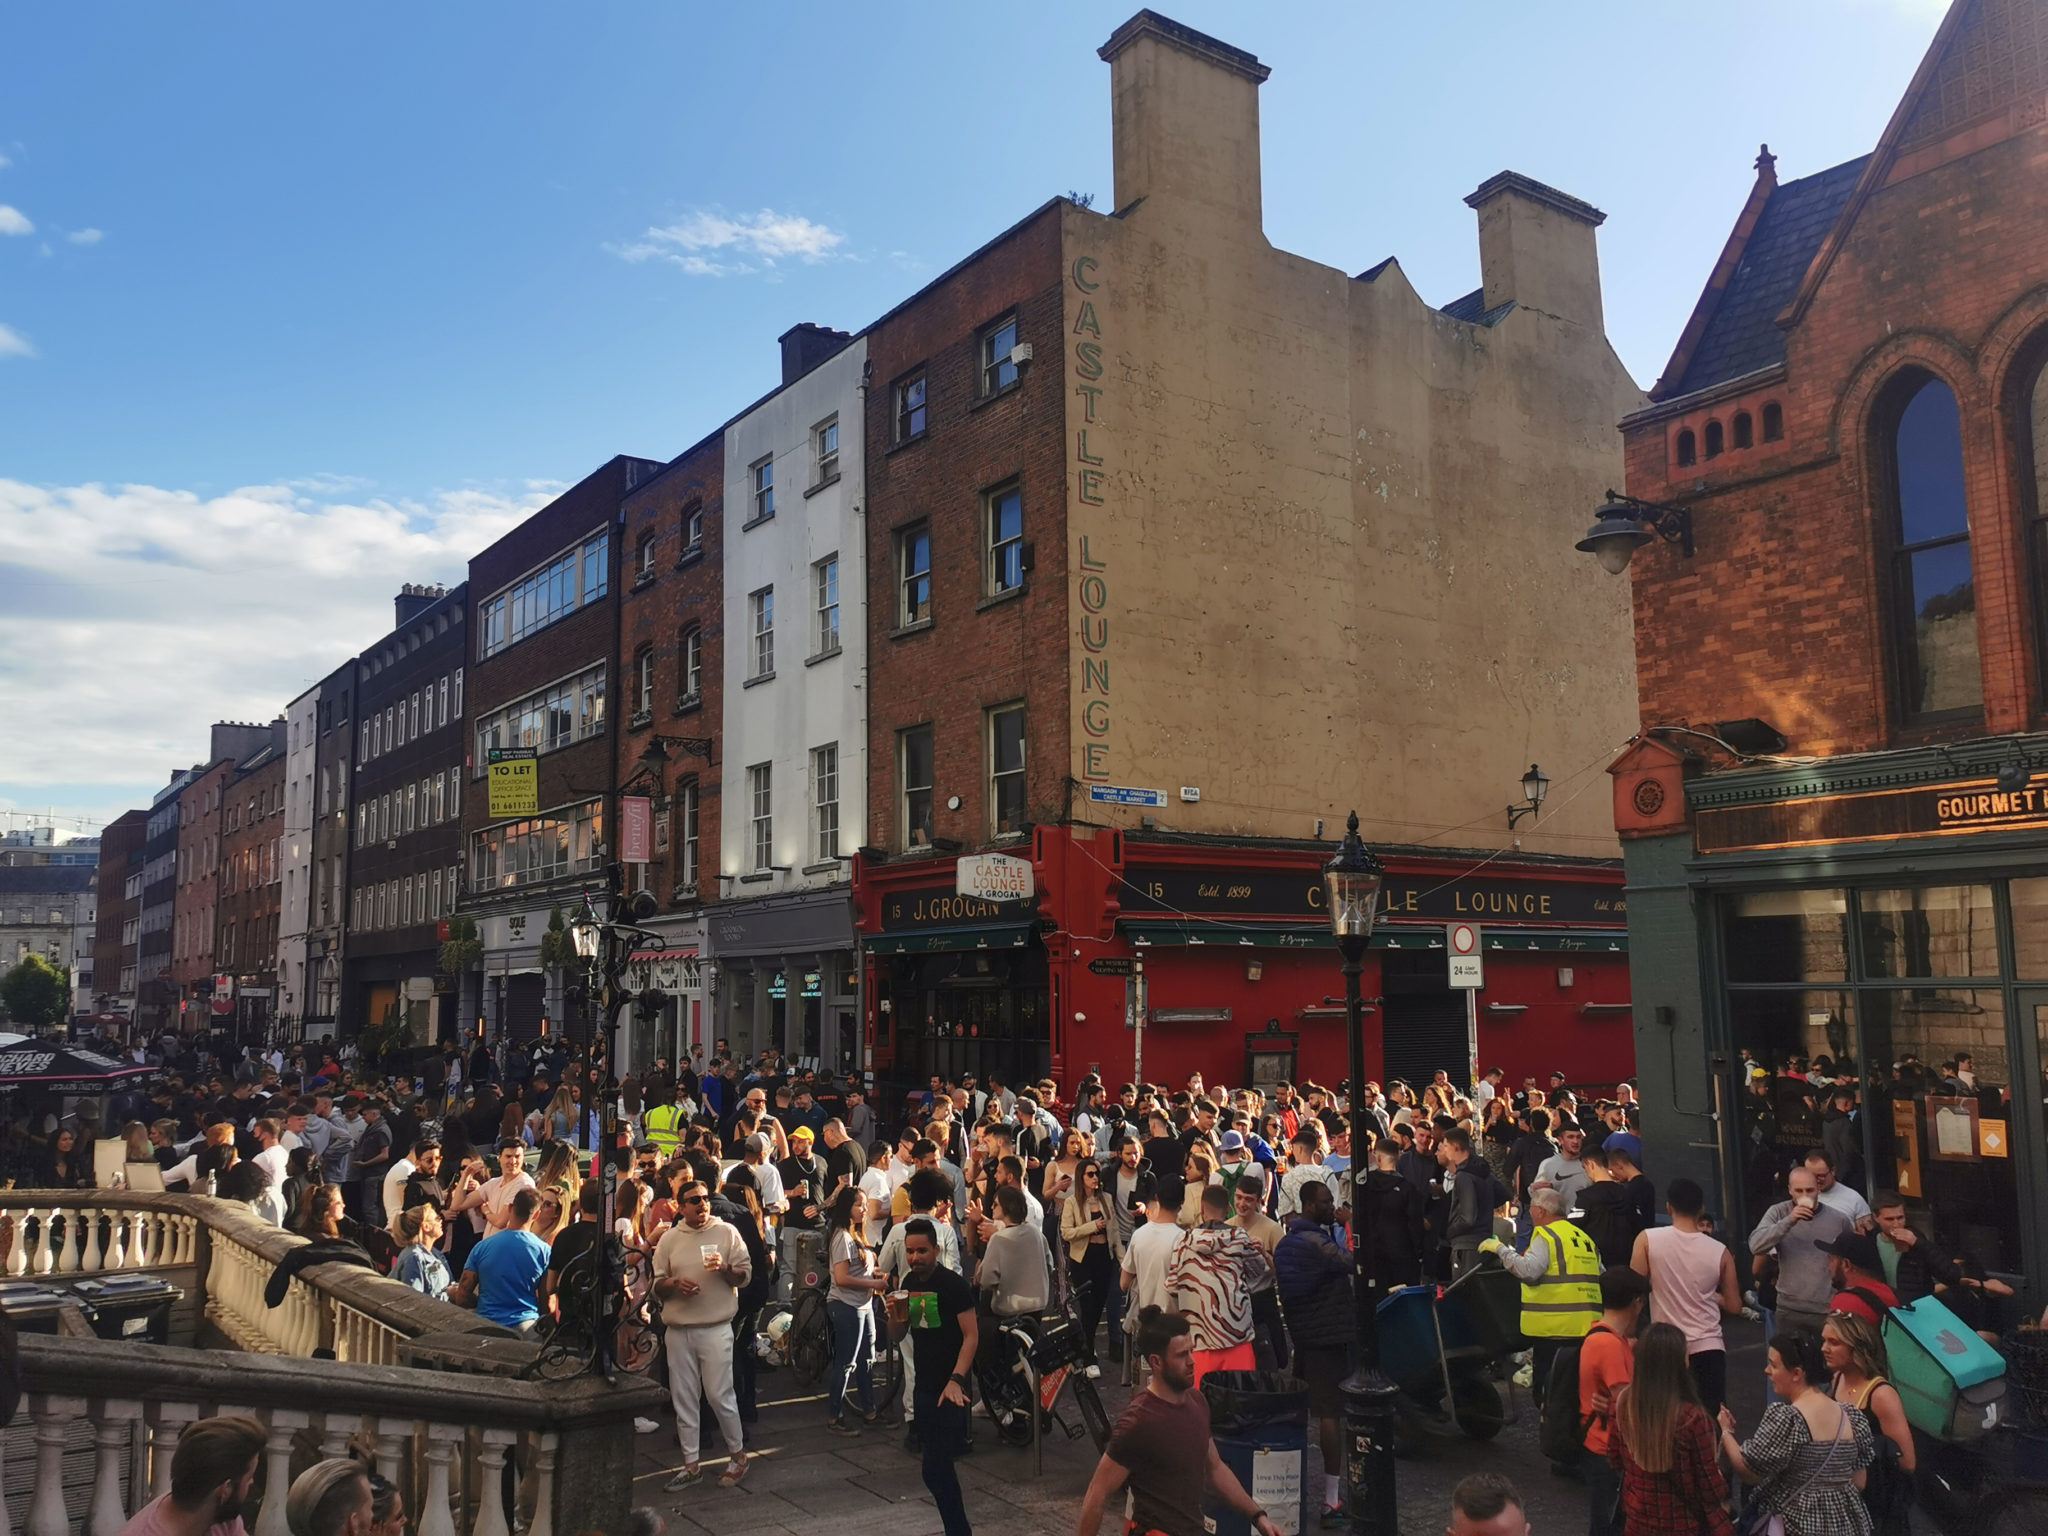 People enjoying a drink on South William Street this evening